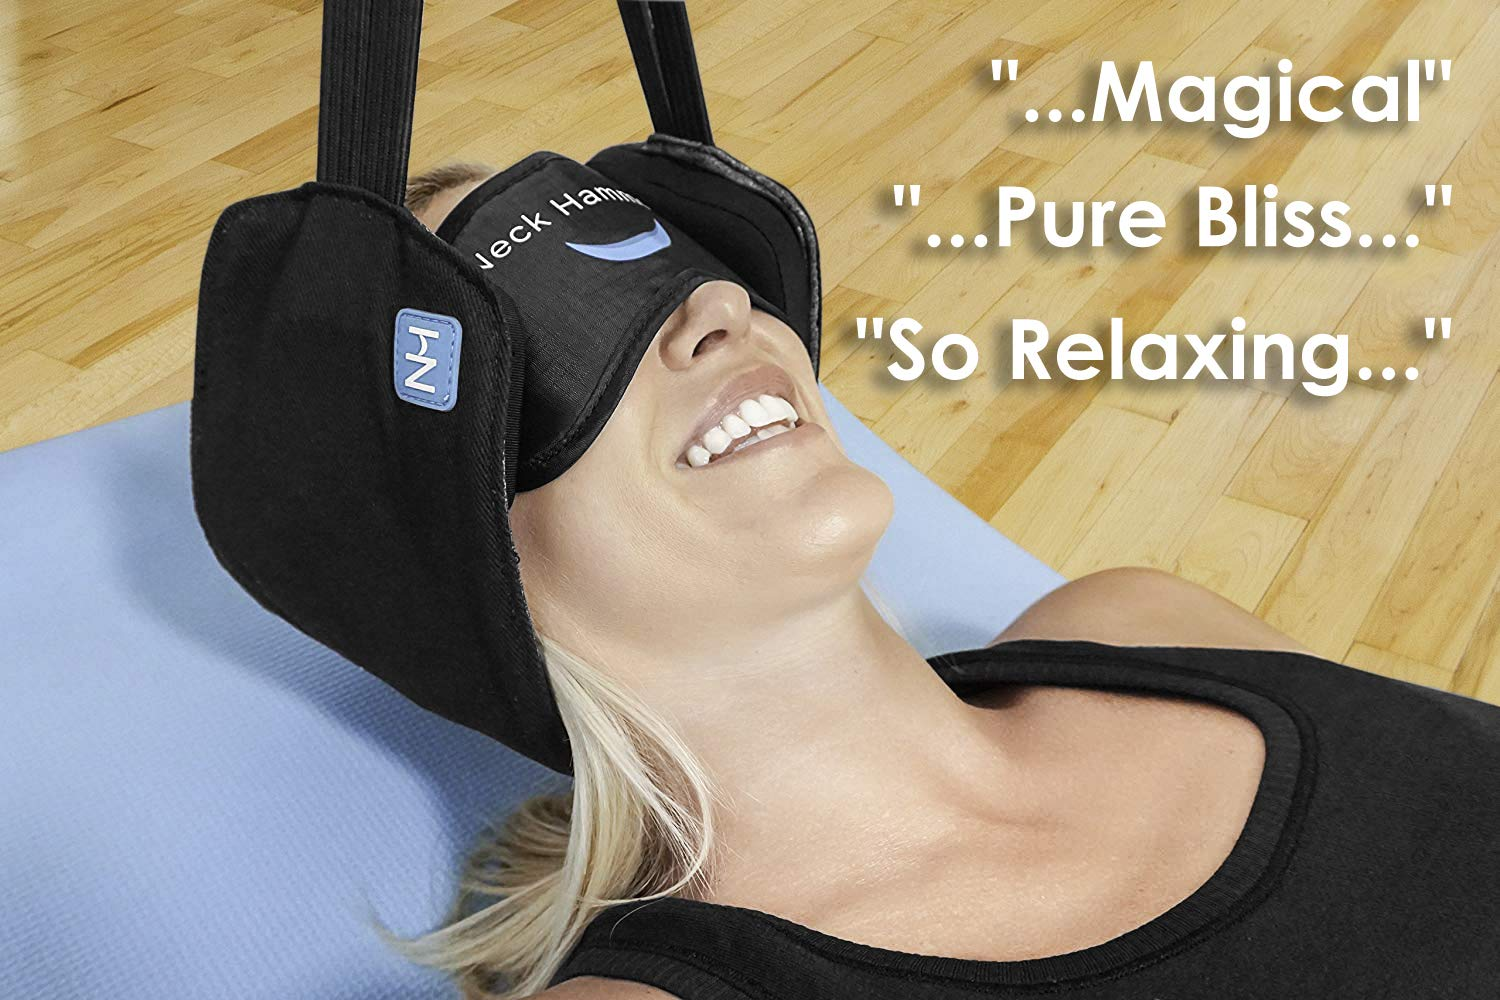 The Neck Hammock 2.0 - The Original Portable Cervical Traction and Relaxation Device. Easily Attach to Any Door or Railing for Chronic Neck Pain Relief in 10 Minutes or Less by The Neck Hammock (Image #3)